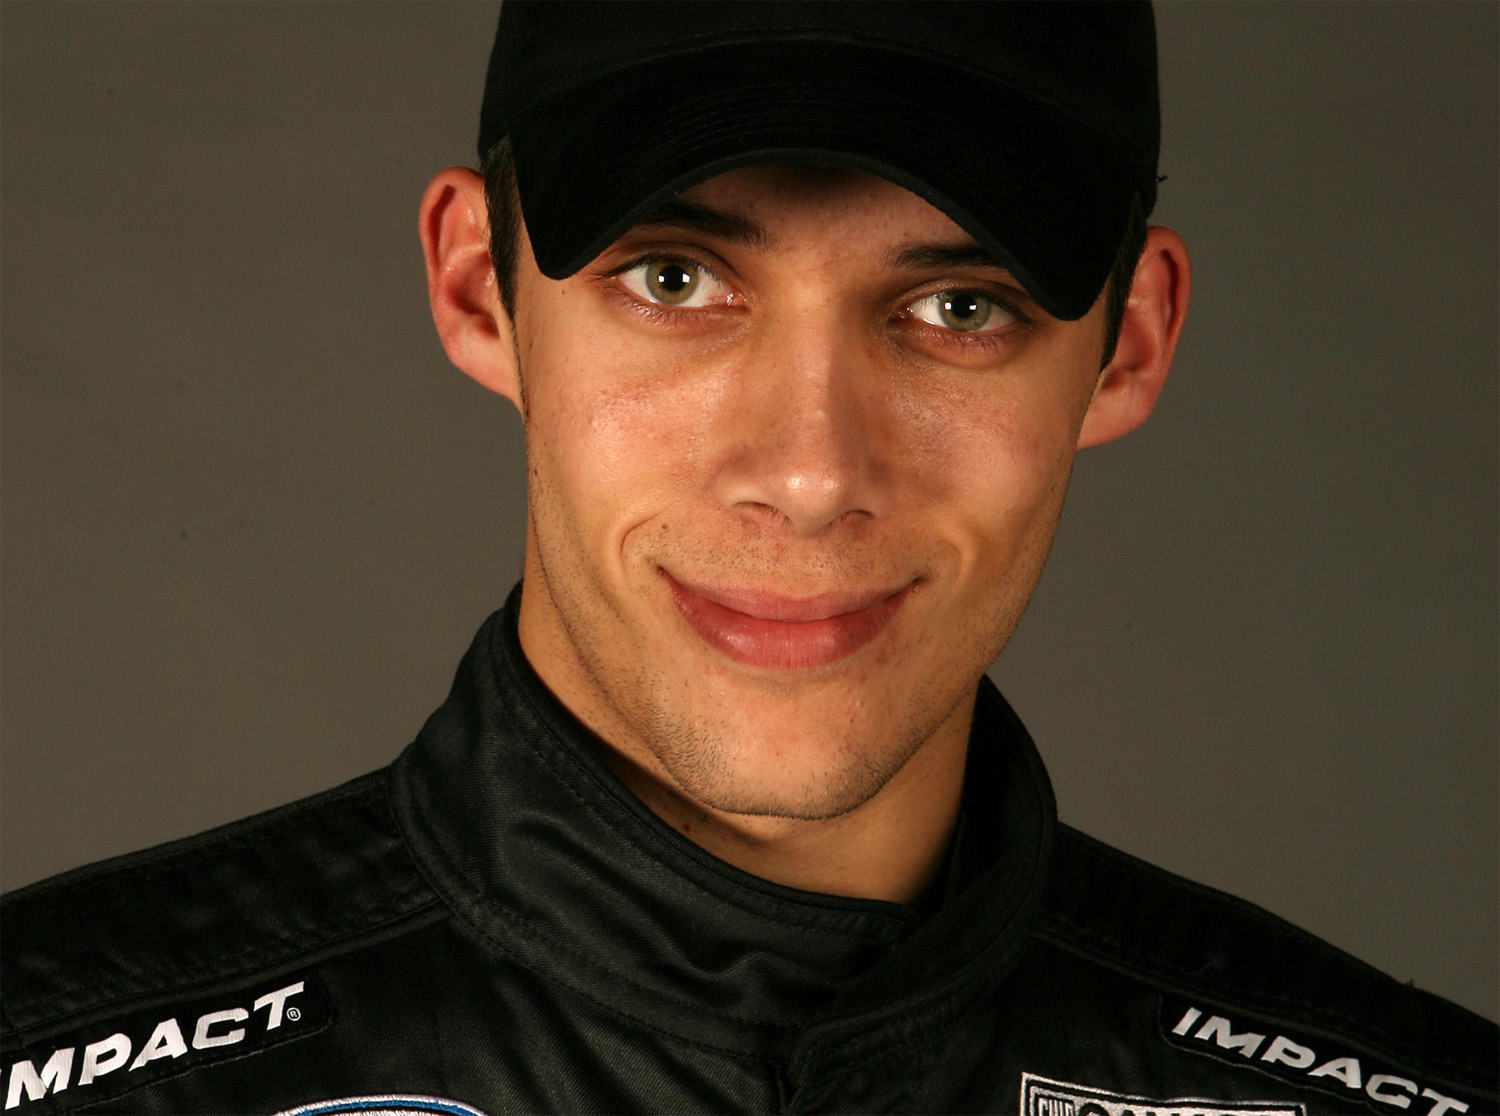 Bryan Clauson made 27 starts in NASCAR, one in the Cup series in 2008 and 26 in the NASCAR Xfinity Series. All his NASCAR starts came in 2007-2008. (NASCAR)